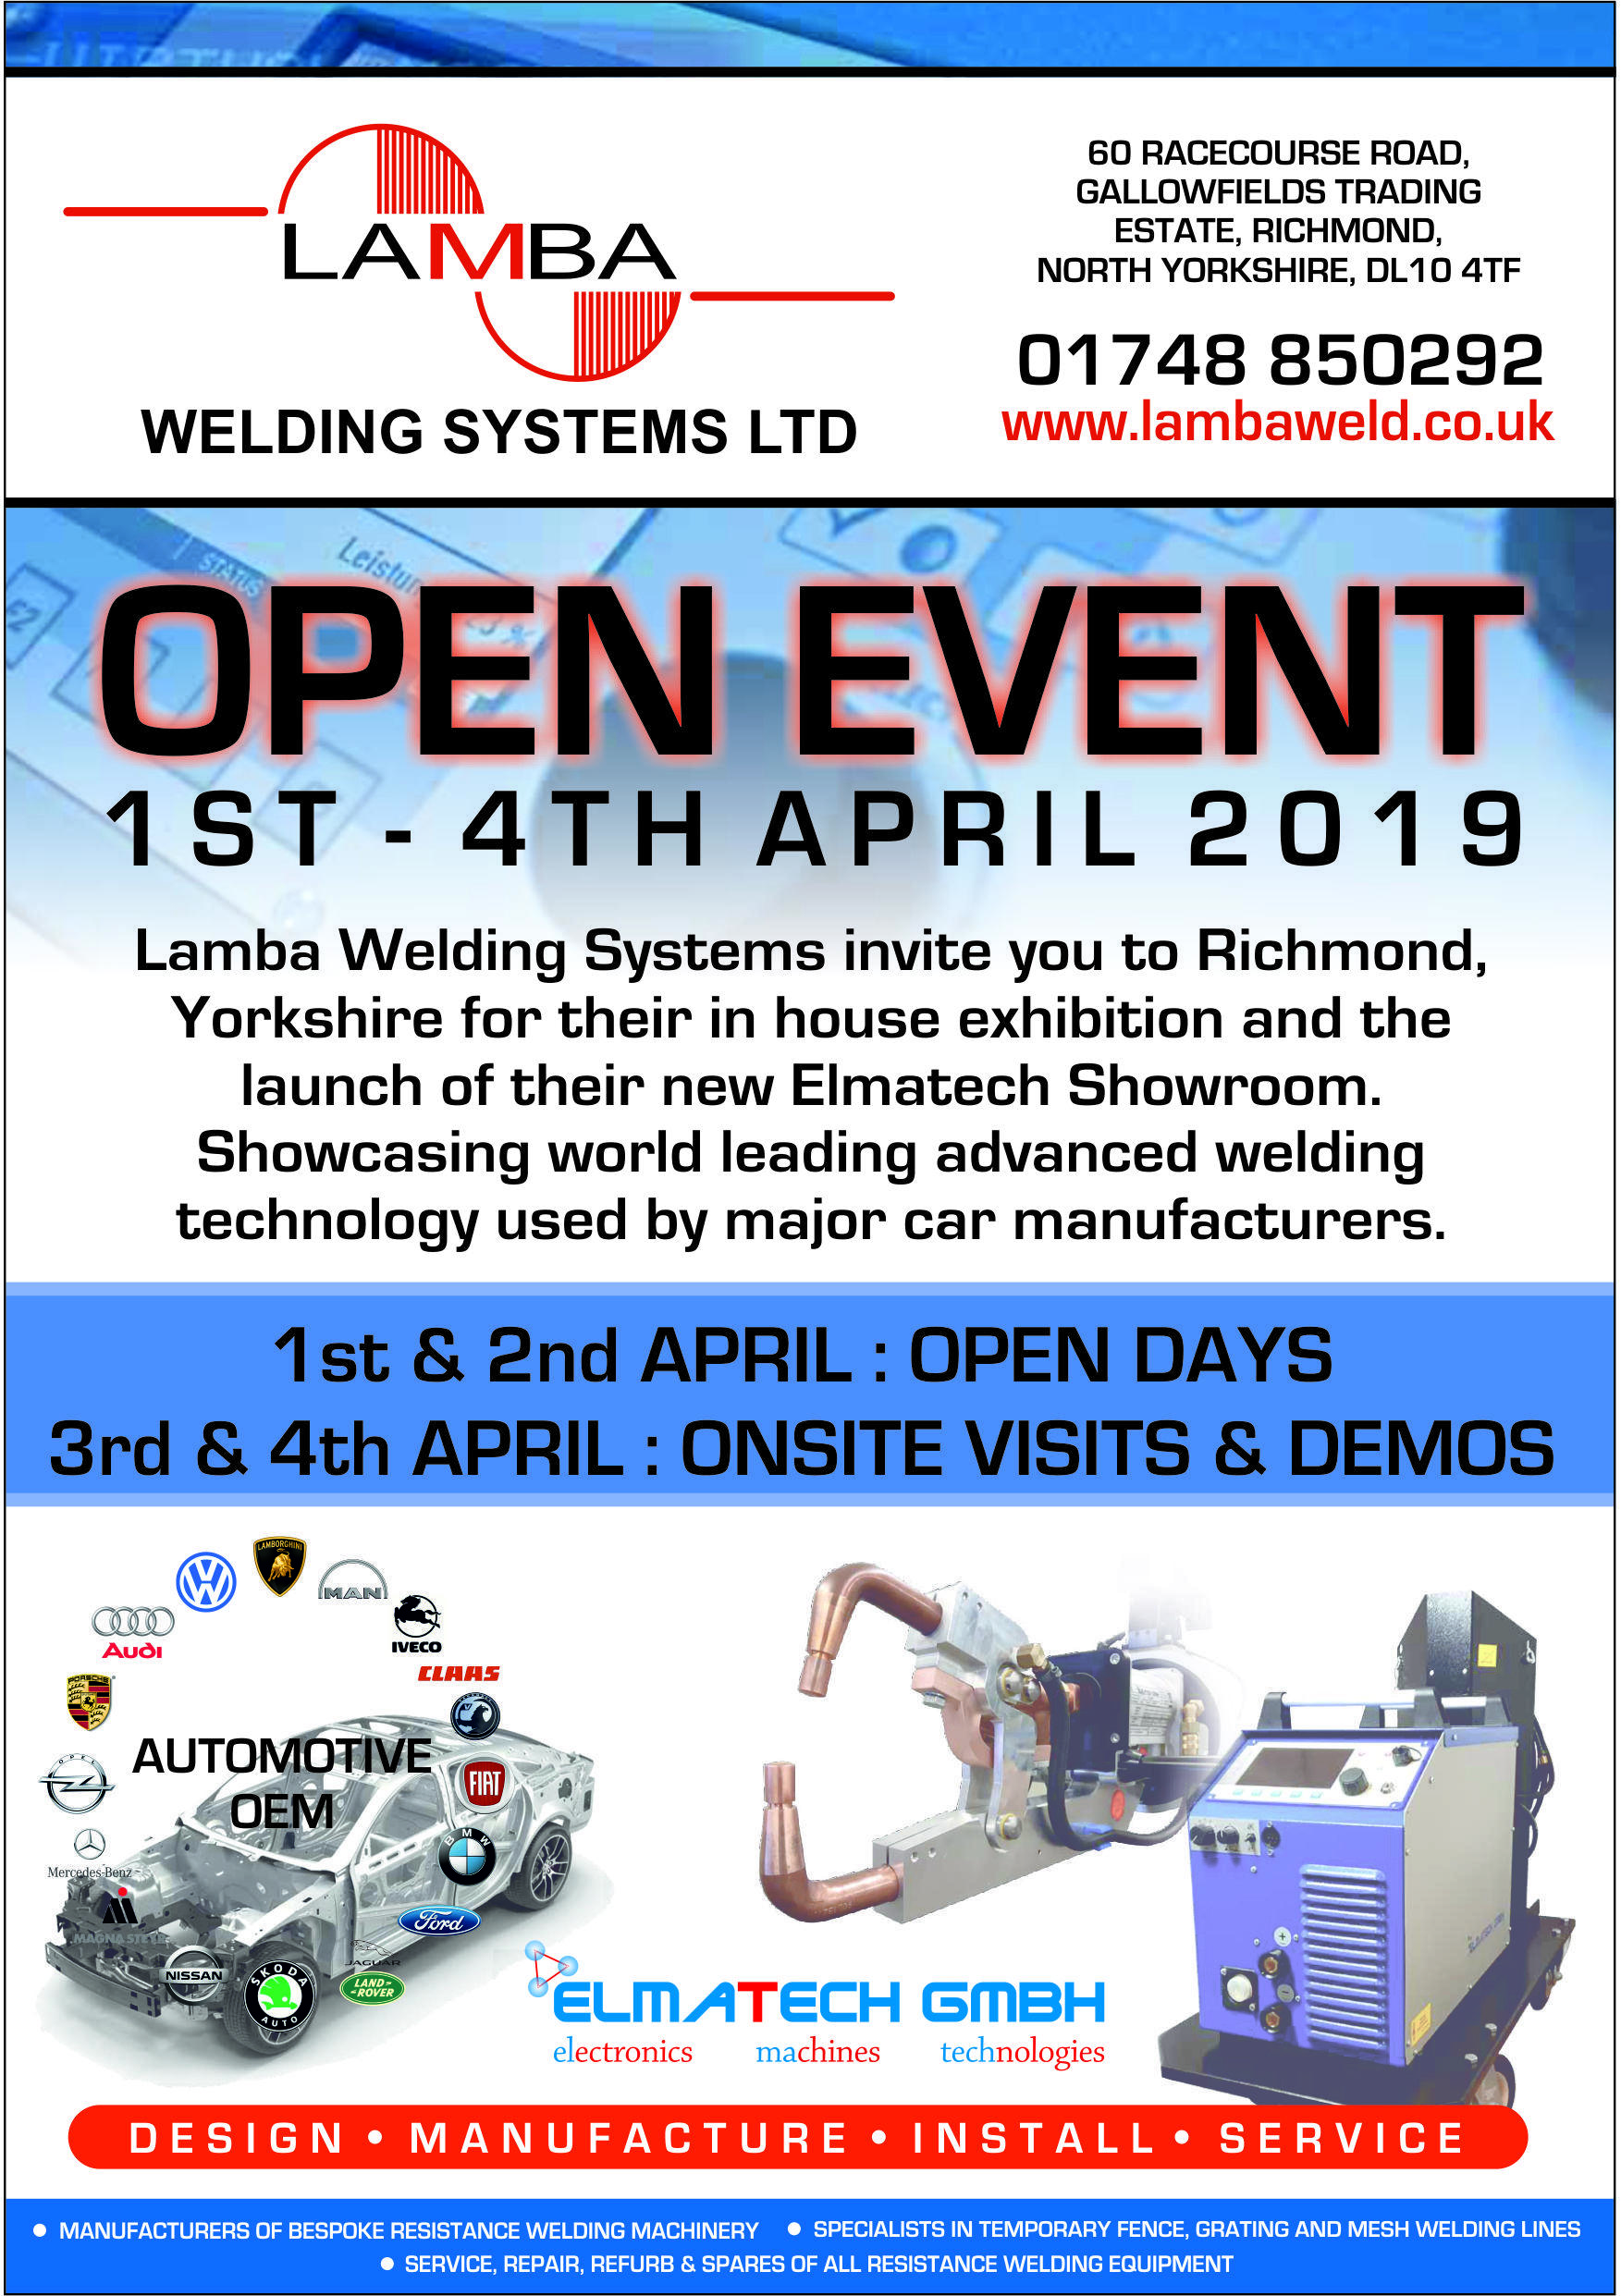 Open Event at LAMBA WELDING SYSTEMS, Richmond, UK, 1st - 4th April 2019.